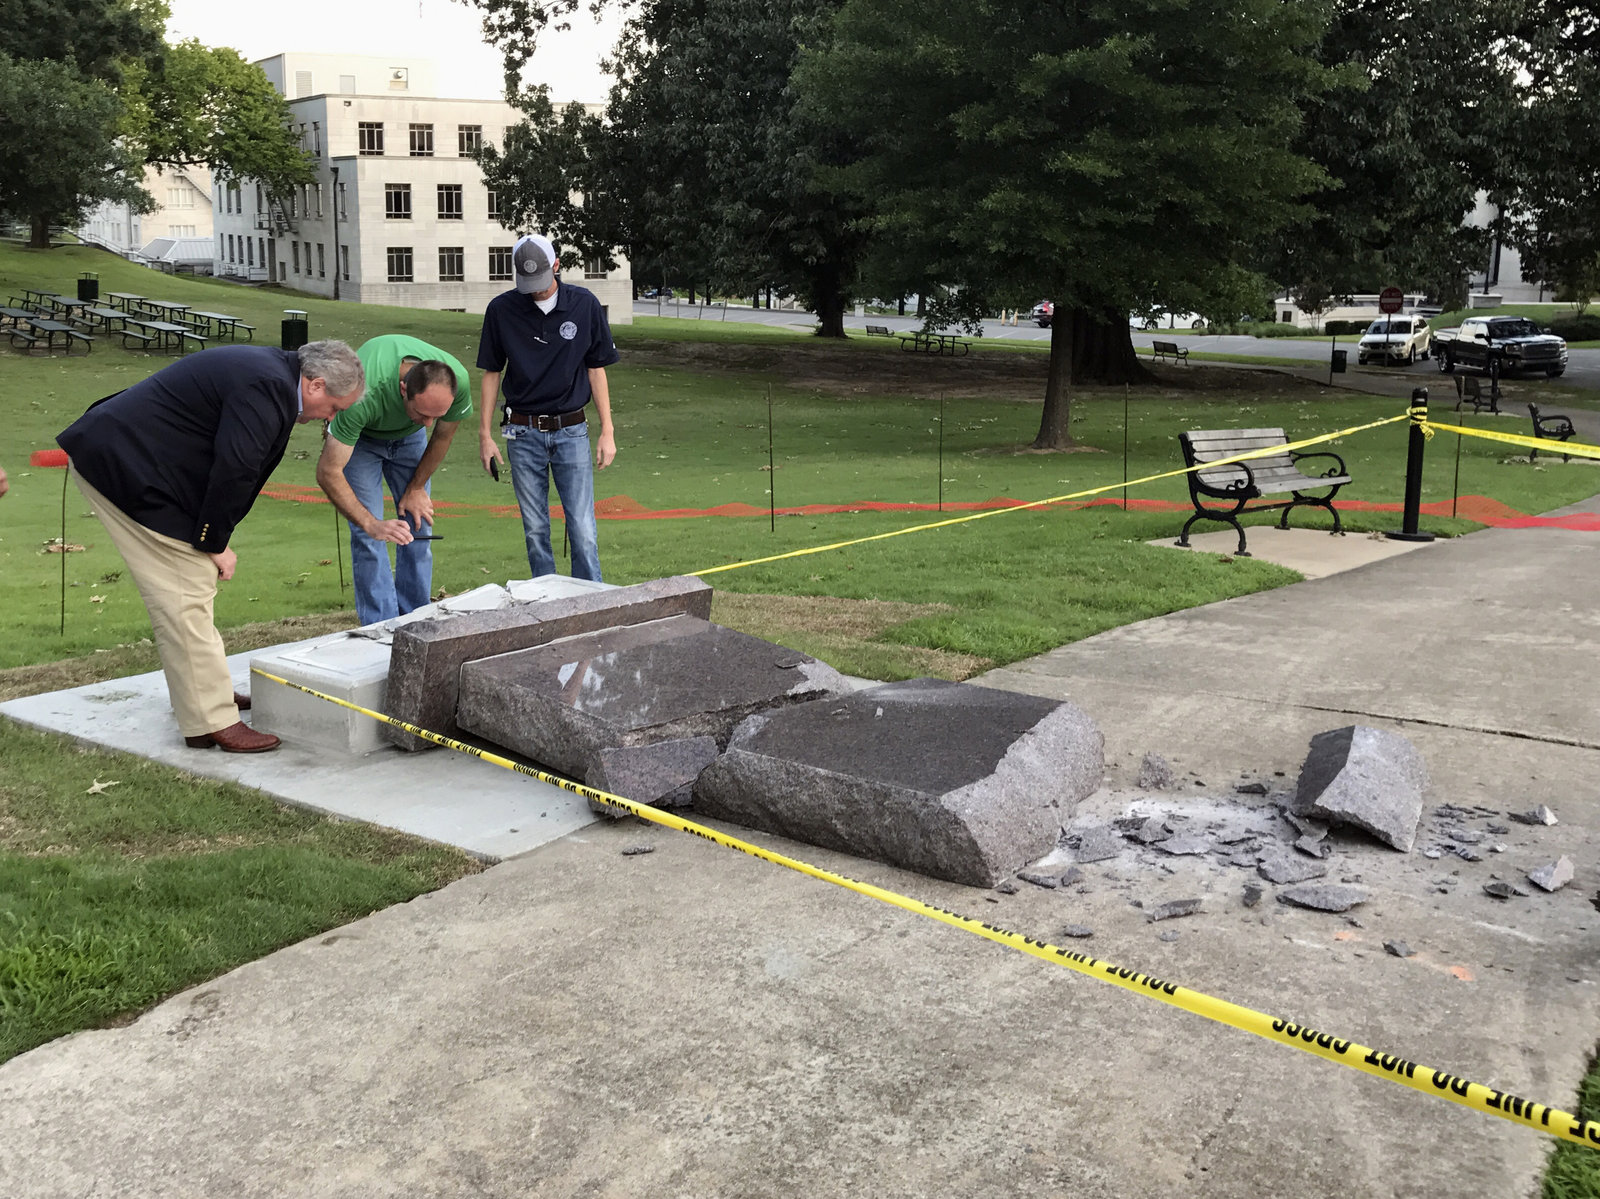 Arkansas' Ten Commandments Monument Lasted Less Than 24 Hours, Laurel Wamsley, NPR, June 28, 2017